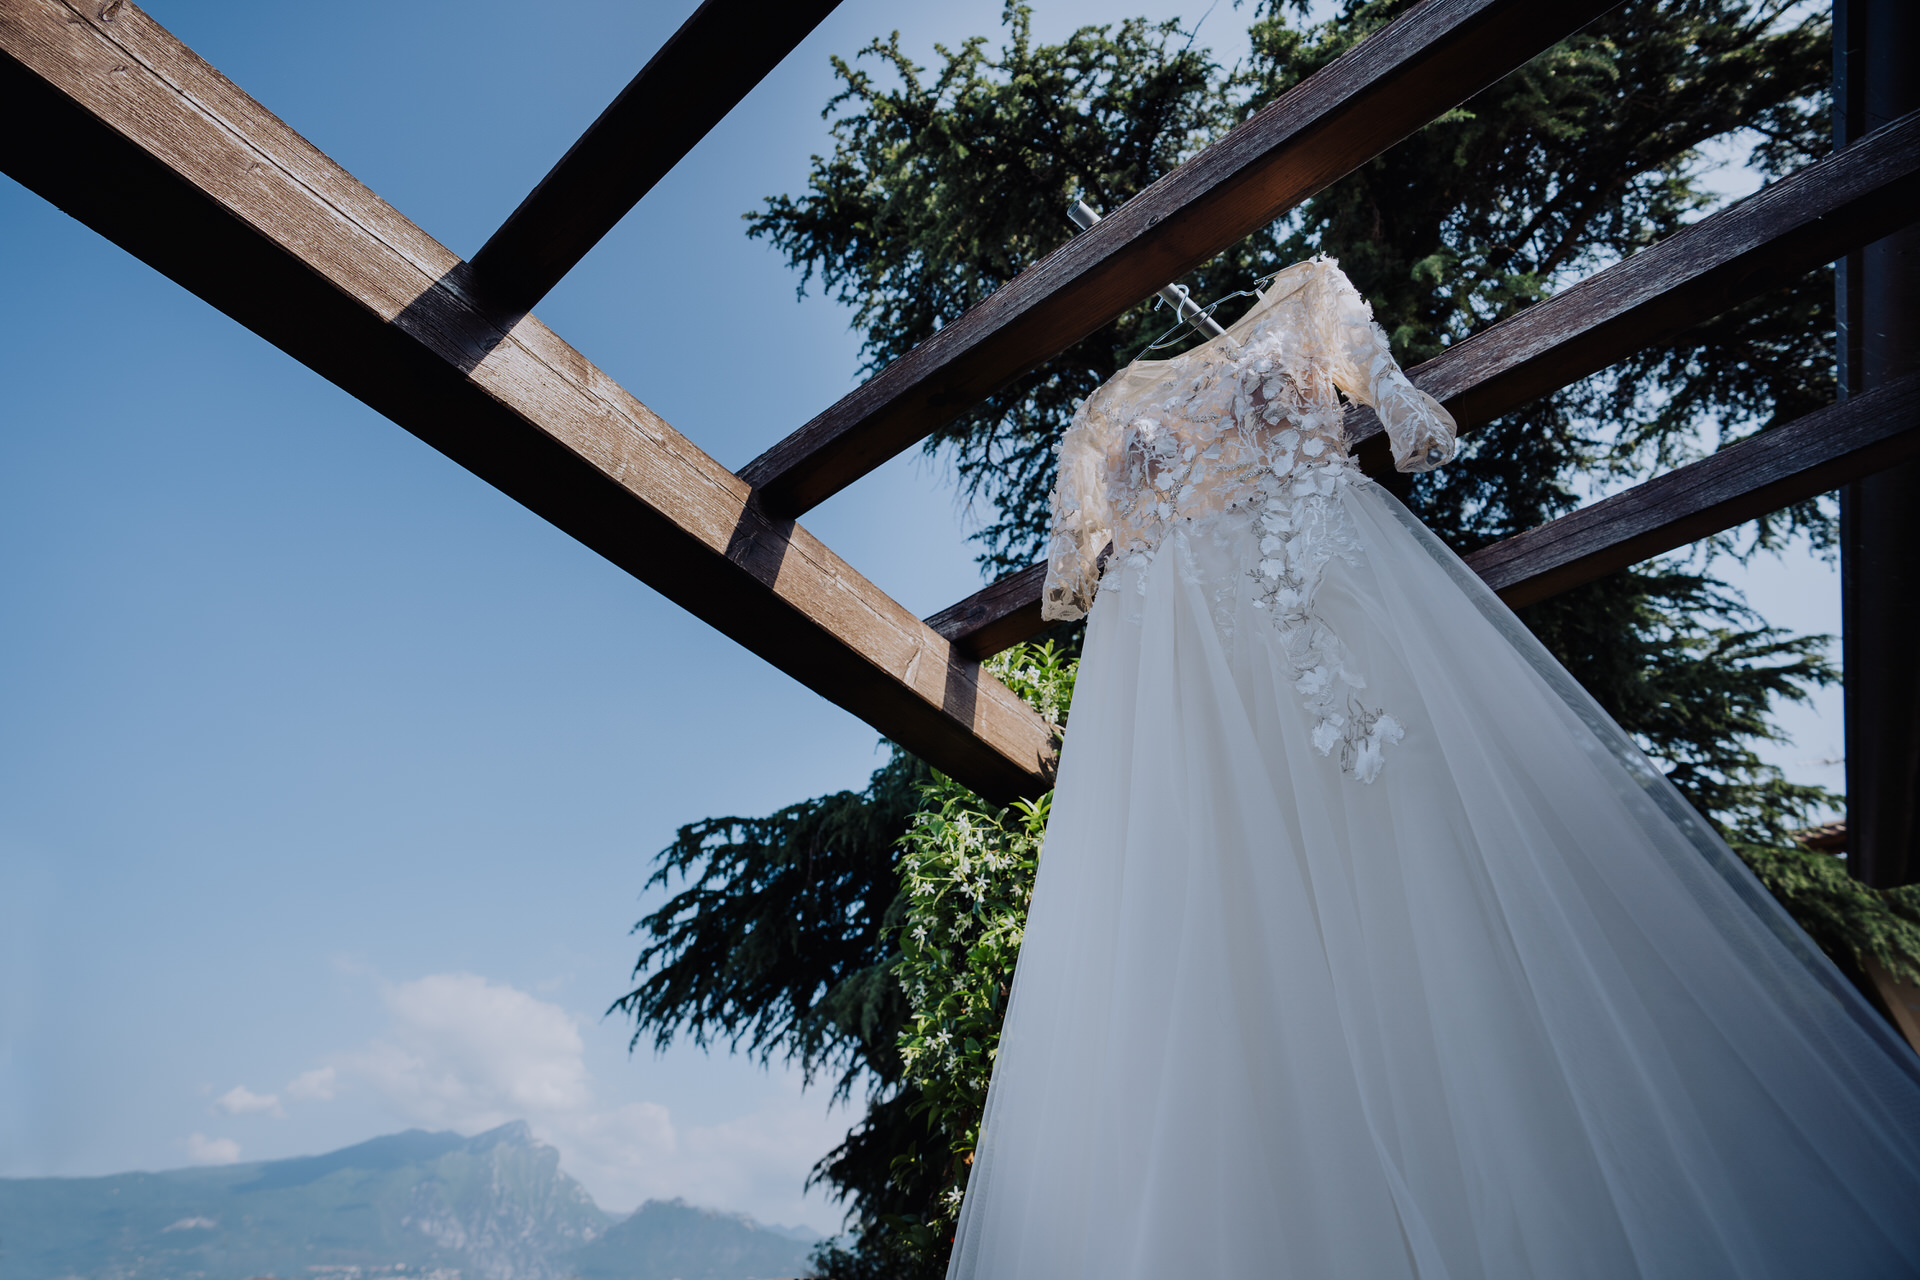 Destination Wedding Image from Torri del Benaco   The brides stunning wedding gown hangs from the pergola